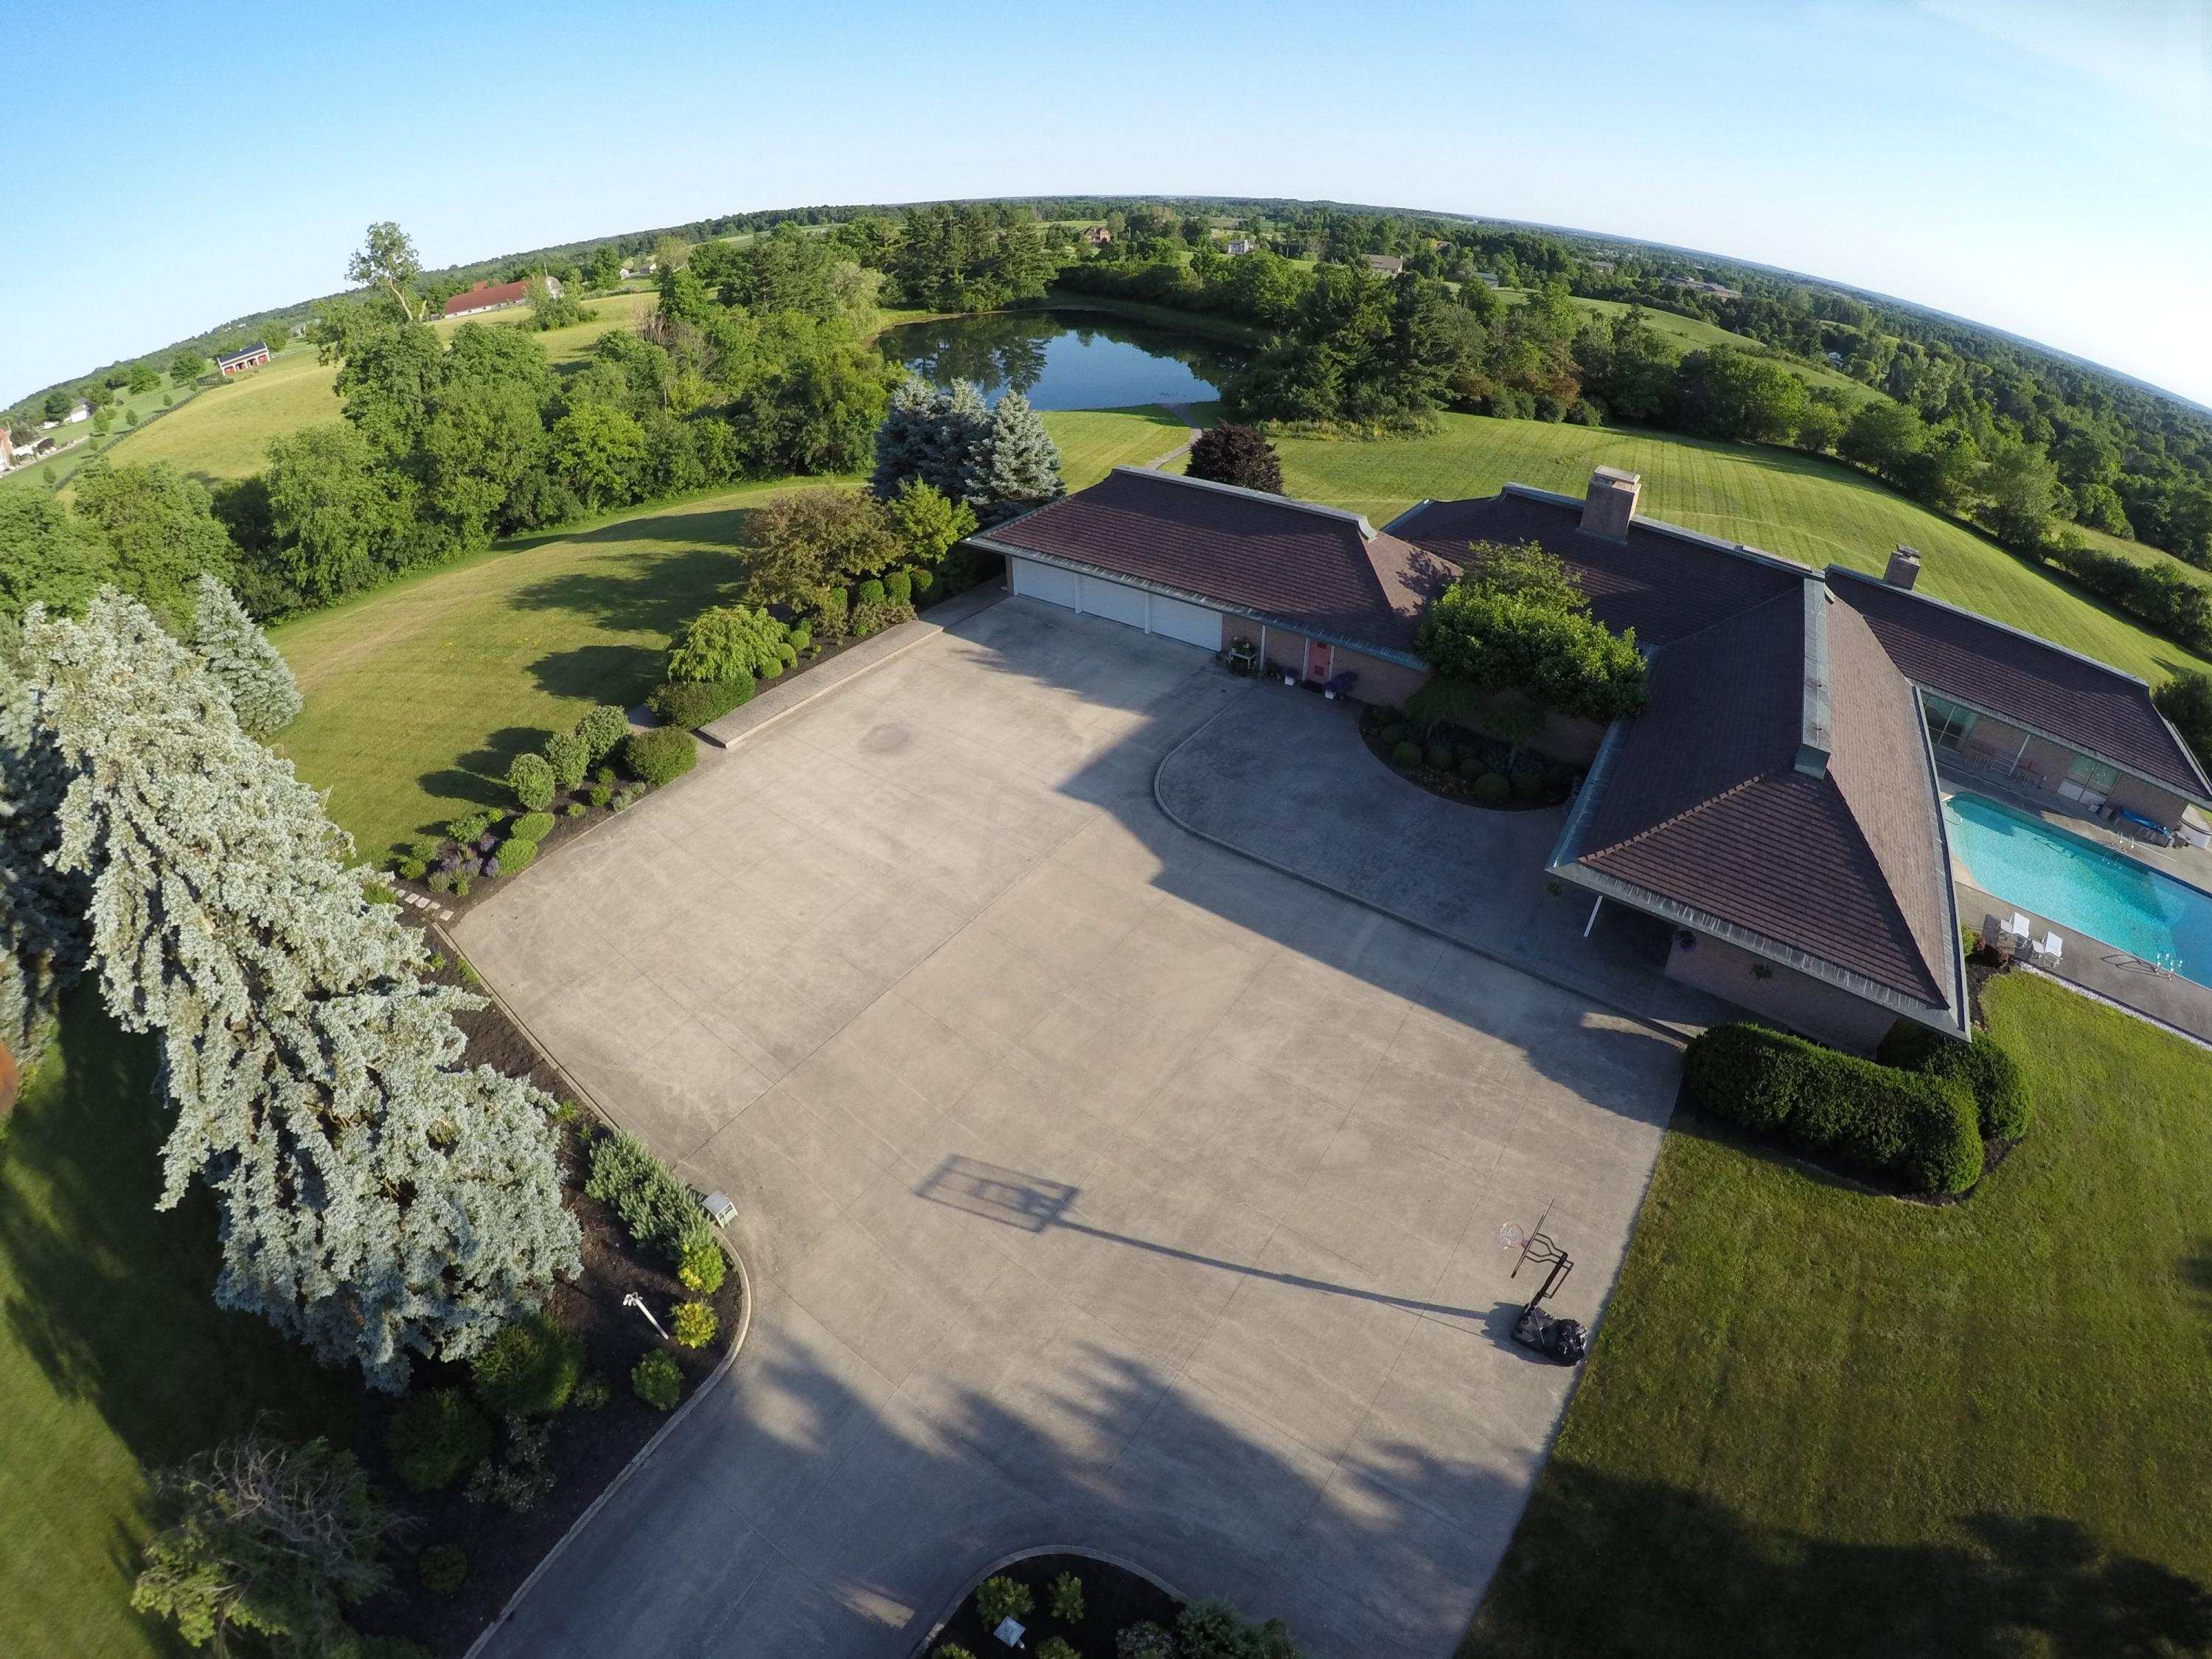 1100 County Road 10, Bellefontaine, Ohio 43311, 3 Bedrooms Bedrooms, ,5 BathroomsBathrooms,Residential,For Sale,County Road 10,216022259